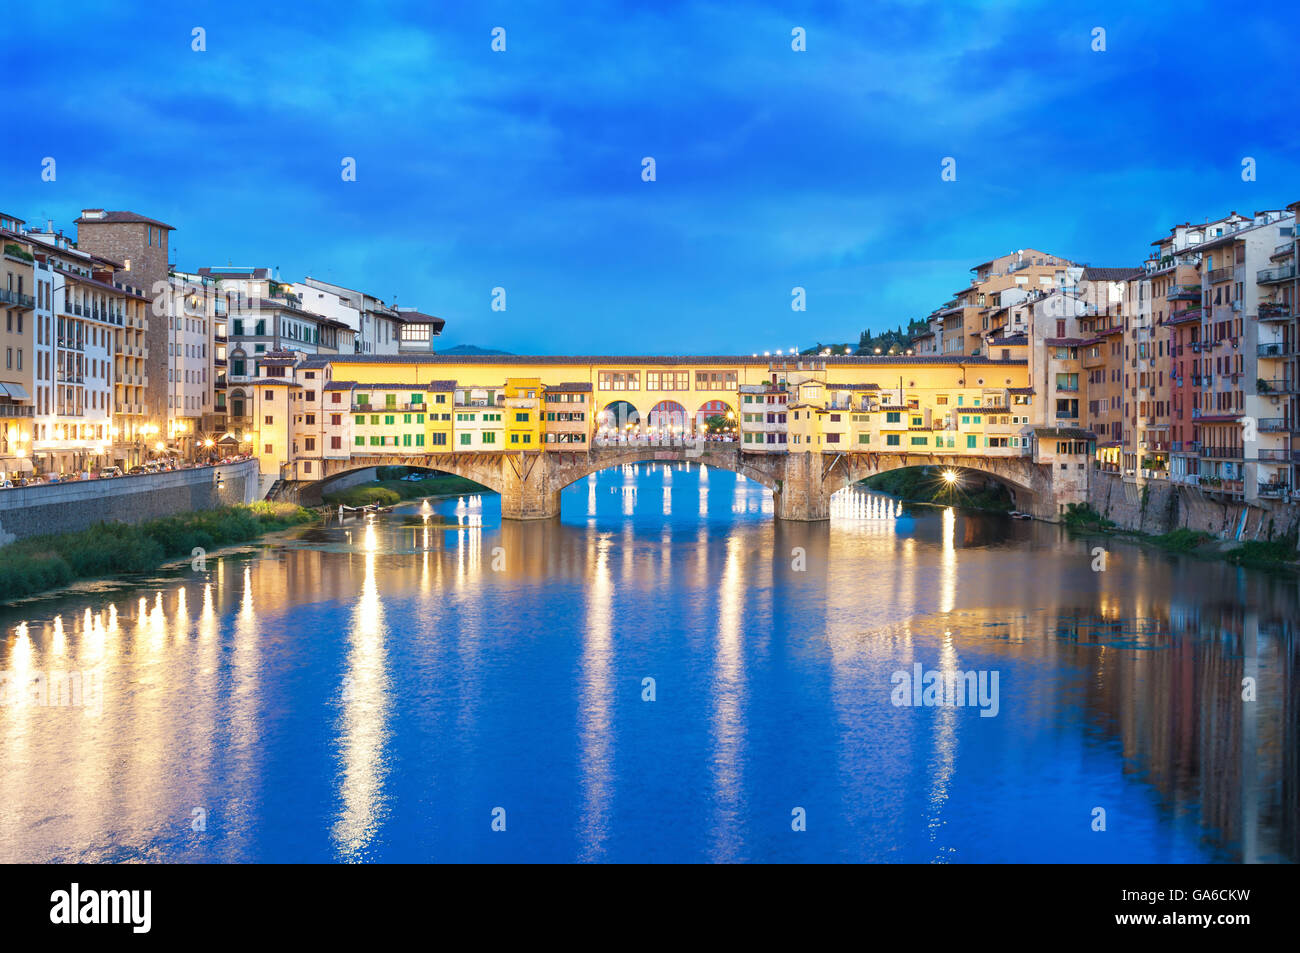 River Arno and Ponte Vecchio at night in Florence, Italy. - Stock Image